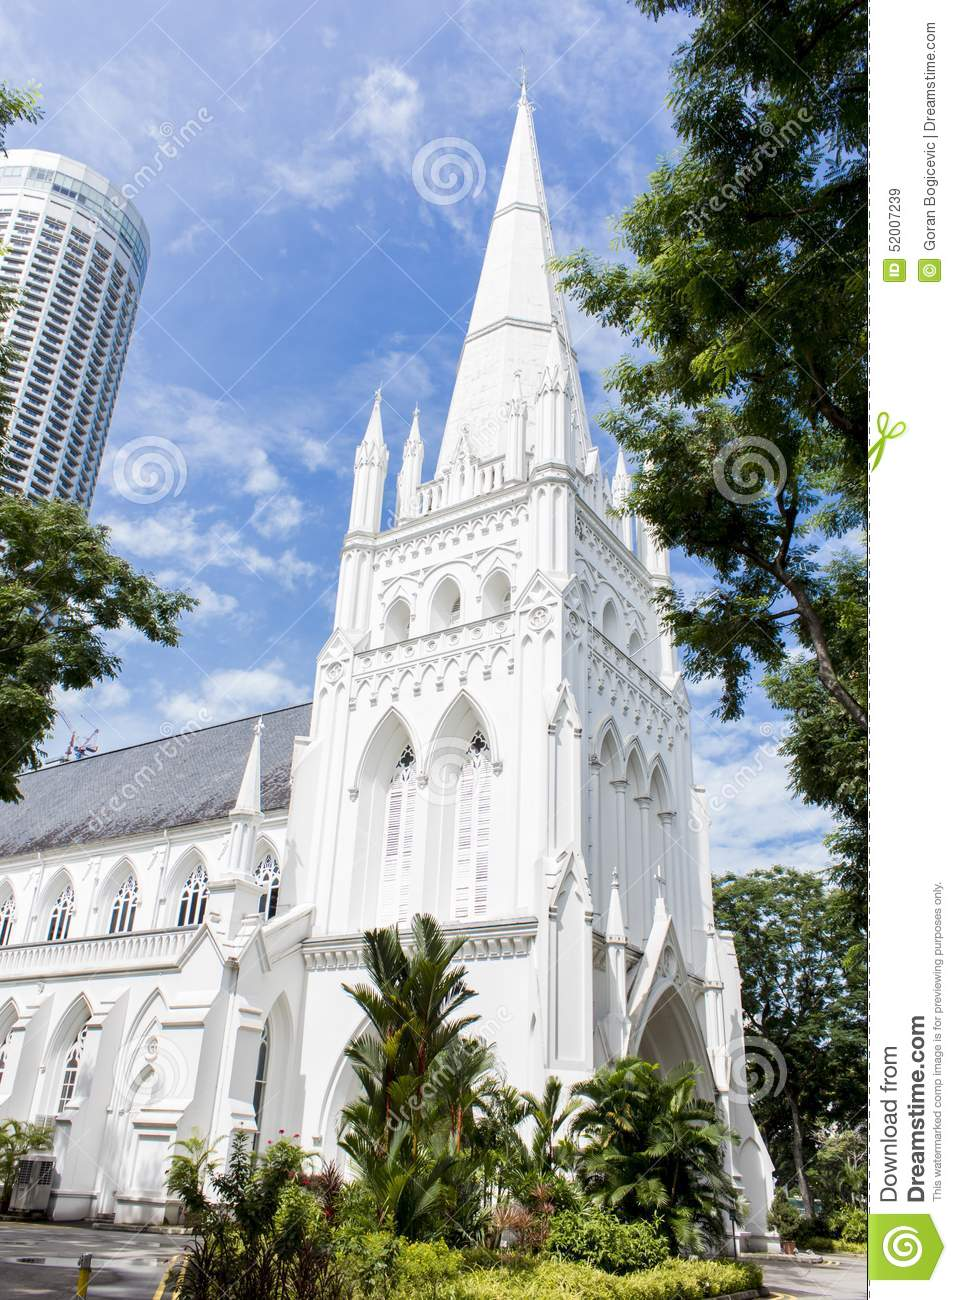 St Andrew's Cathedral, Singapore Stock Photo.